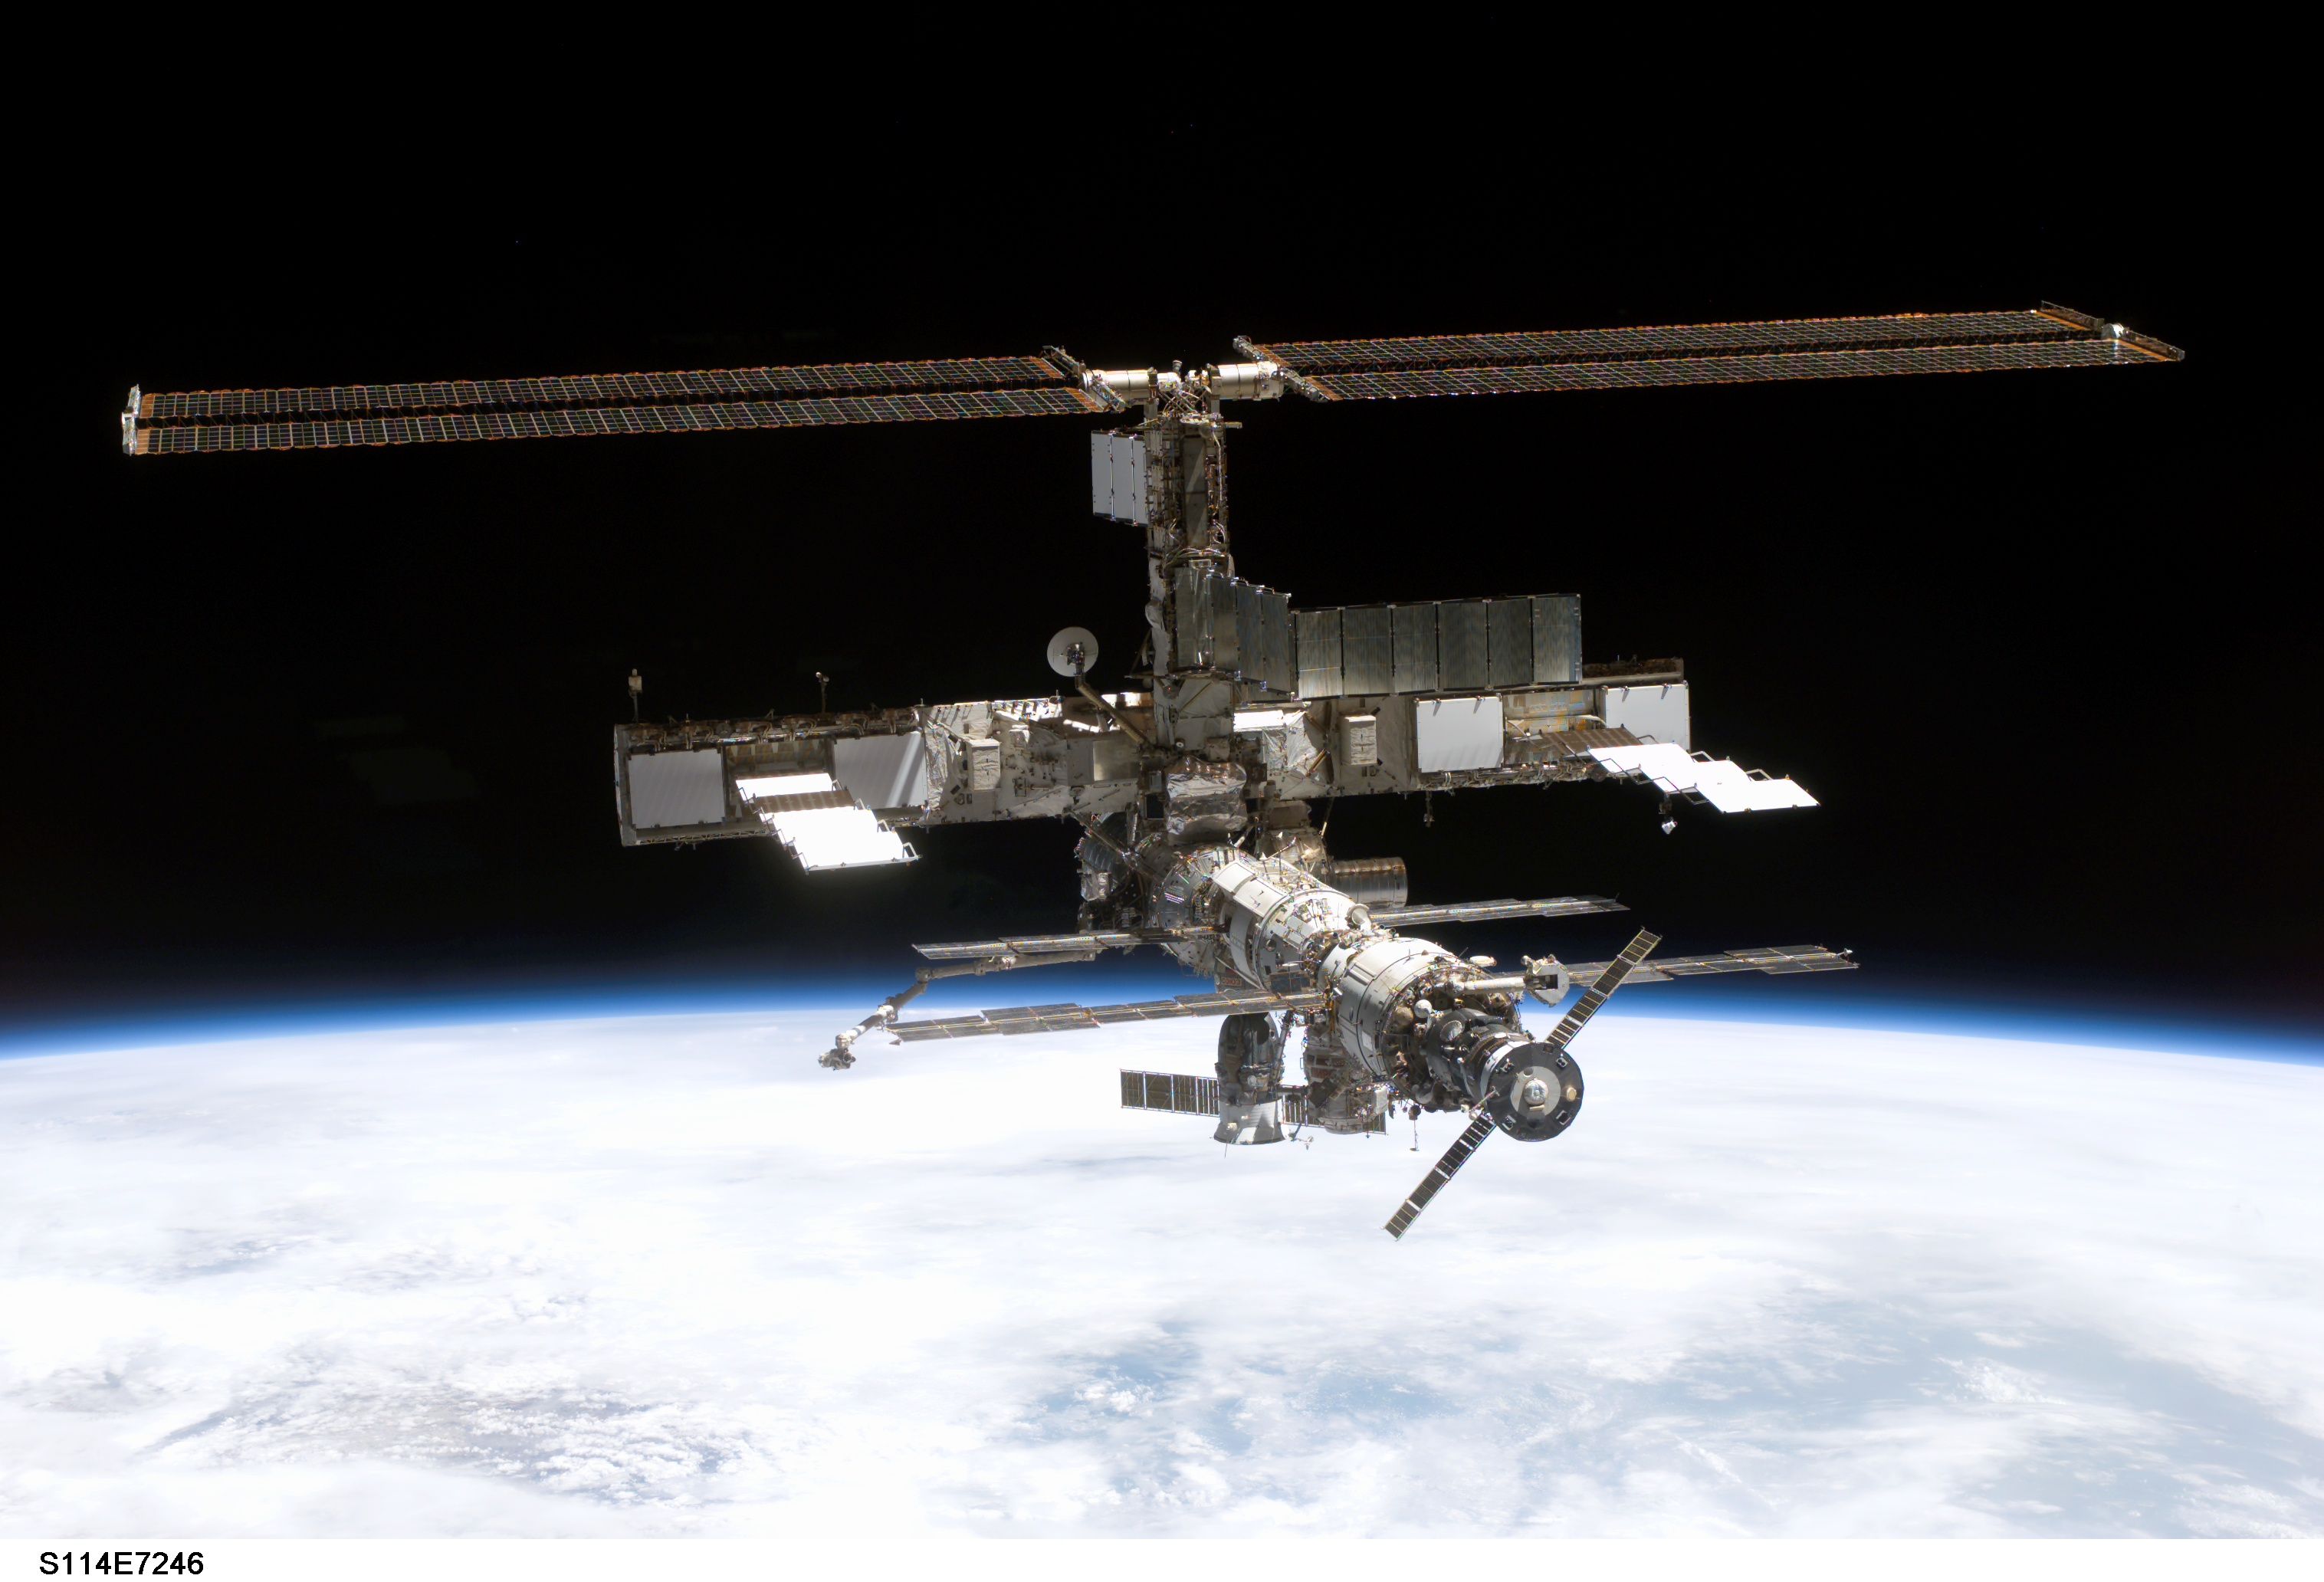 space shuttle iss - photo #27